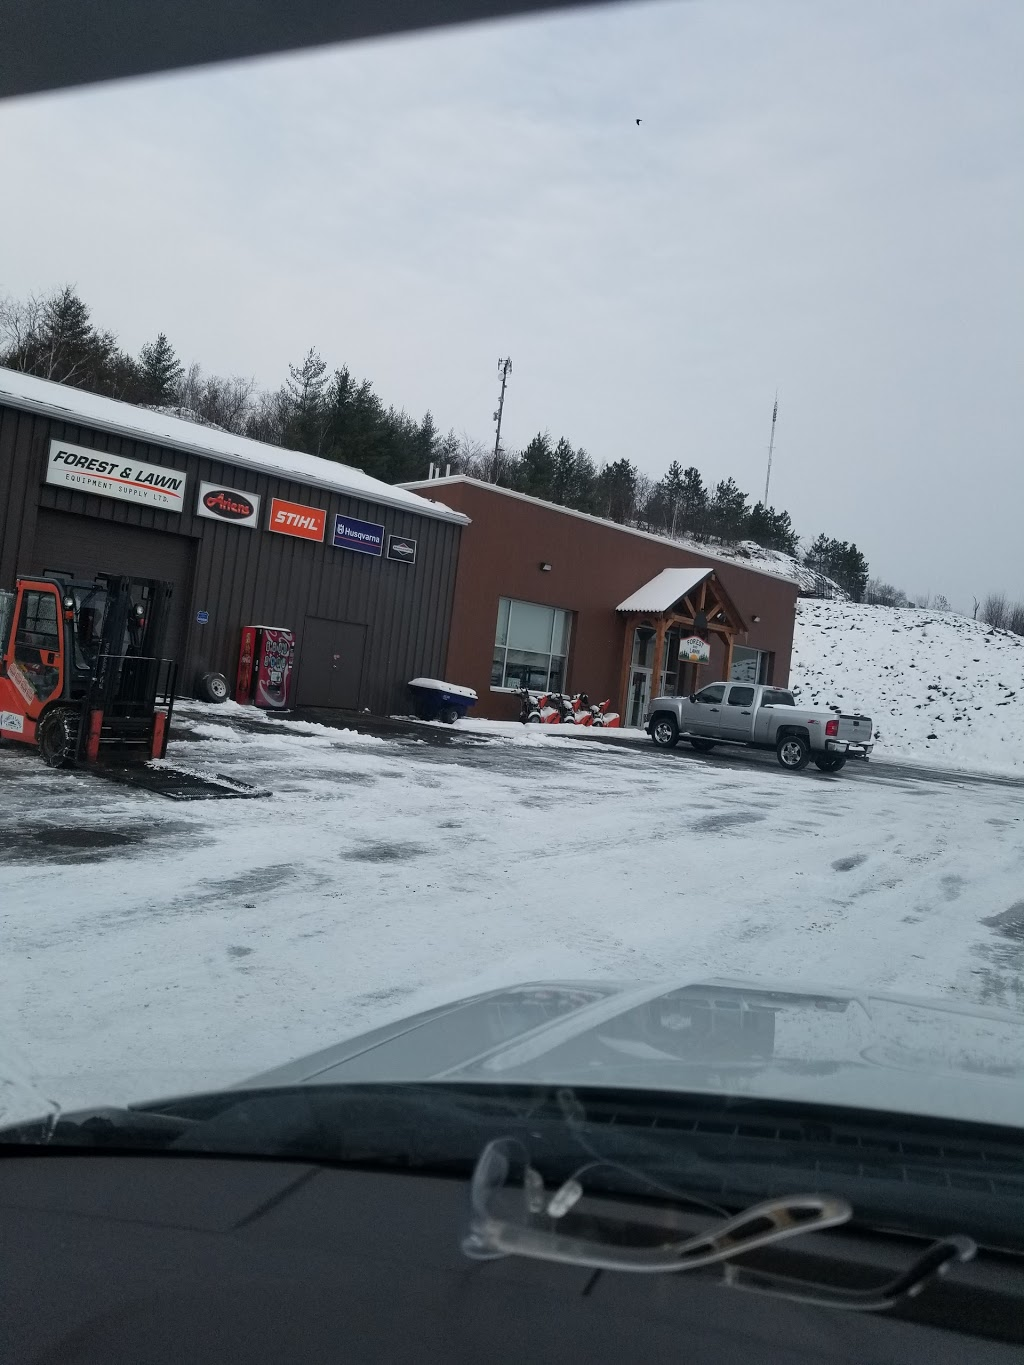 Forest & Lawn Equipment Supply   store   1024 Kingsway, Sudbury, ON P3B 2E5, Canada   7055247791 OR +1 705-524-7791